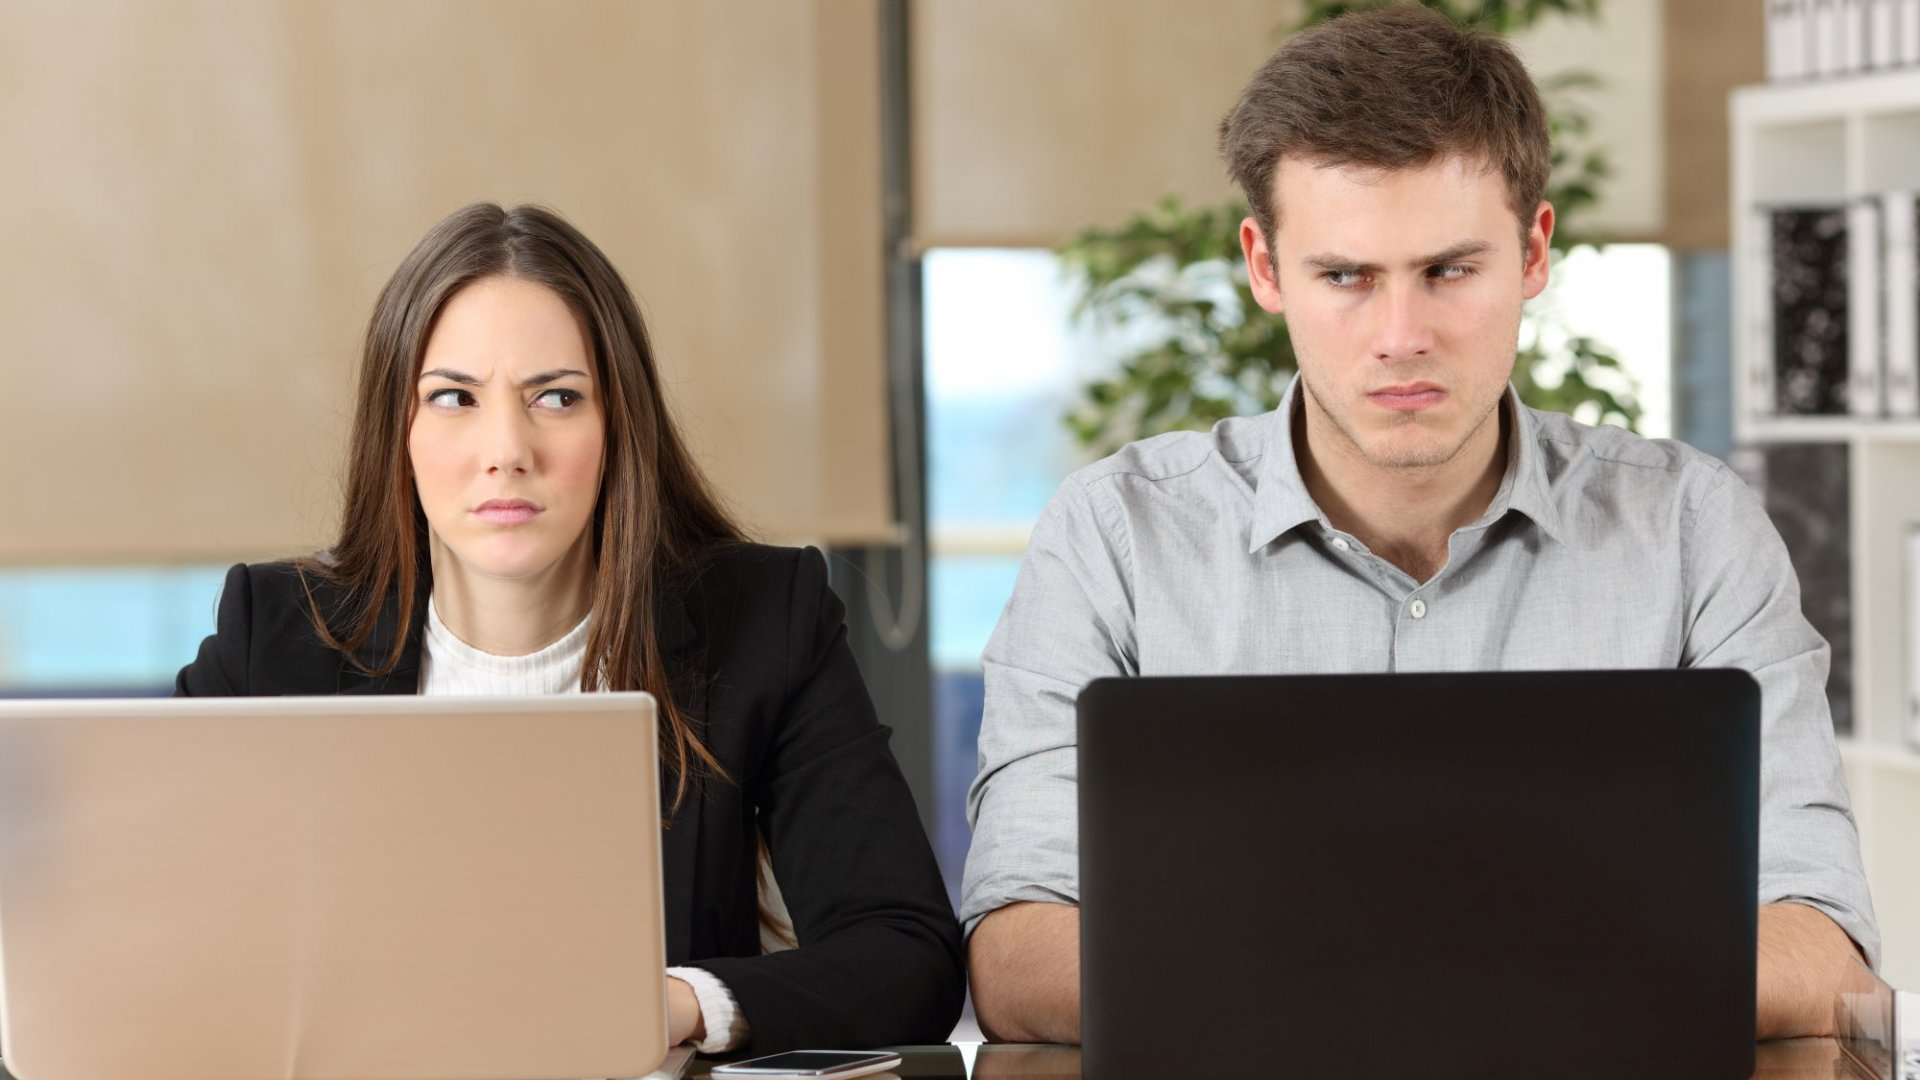 Read These 5 Steps Before Speaking With a Hostile Colleague